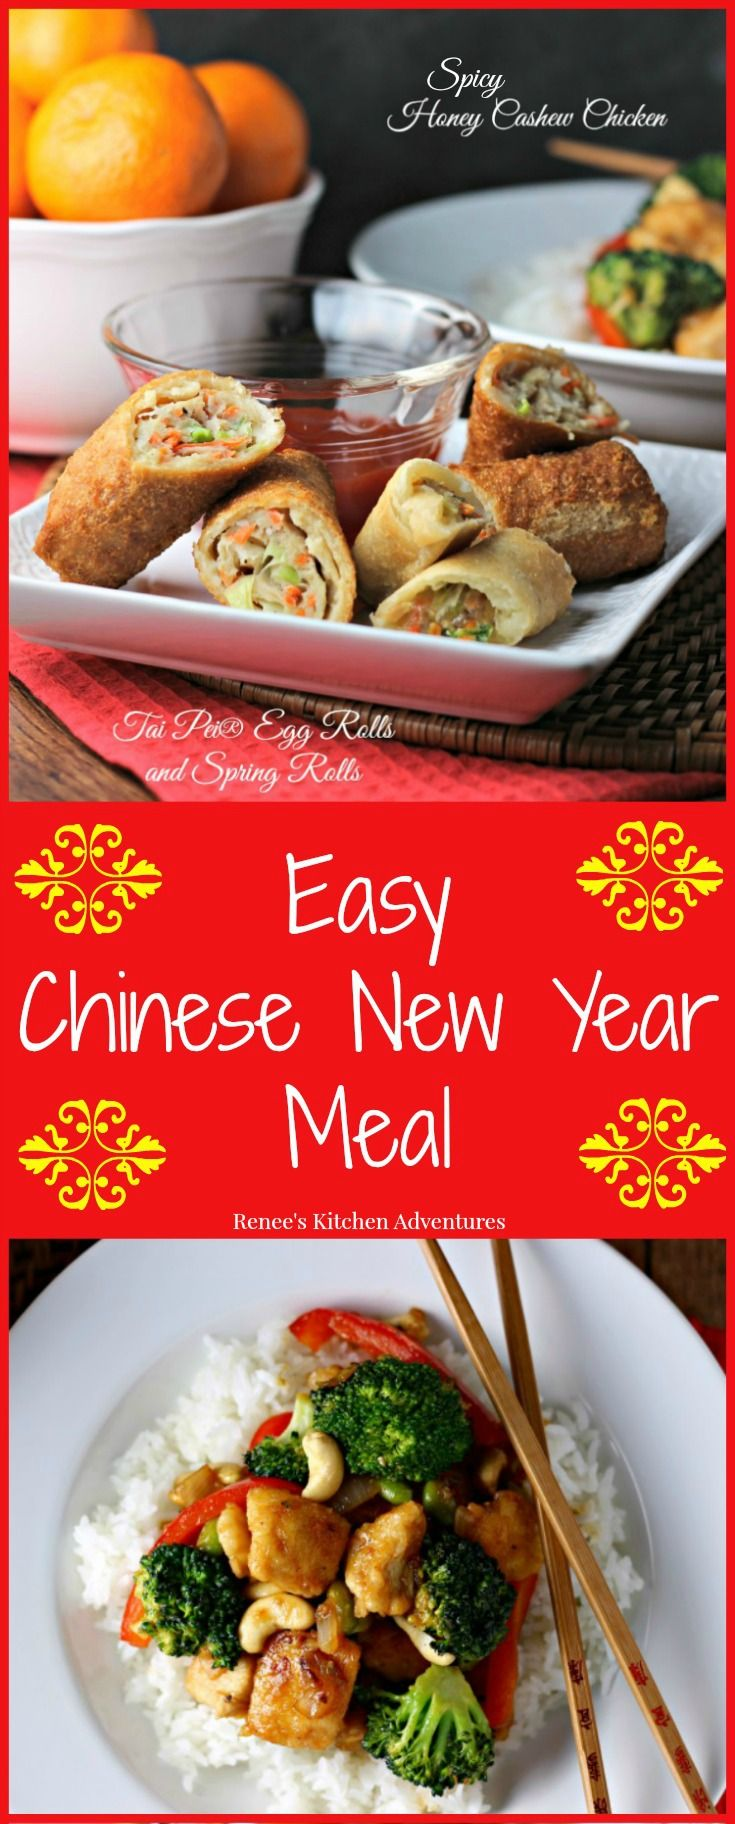 Easy chinese new year meal spicy honey cashew chicken w